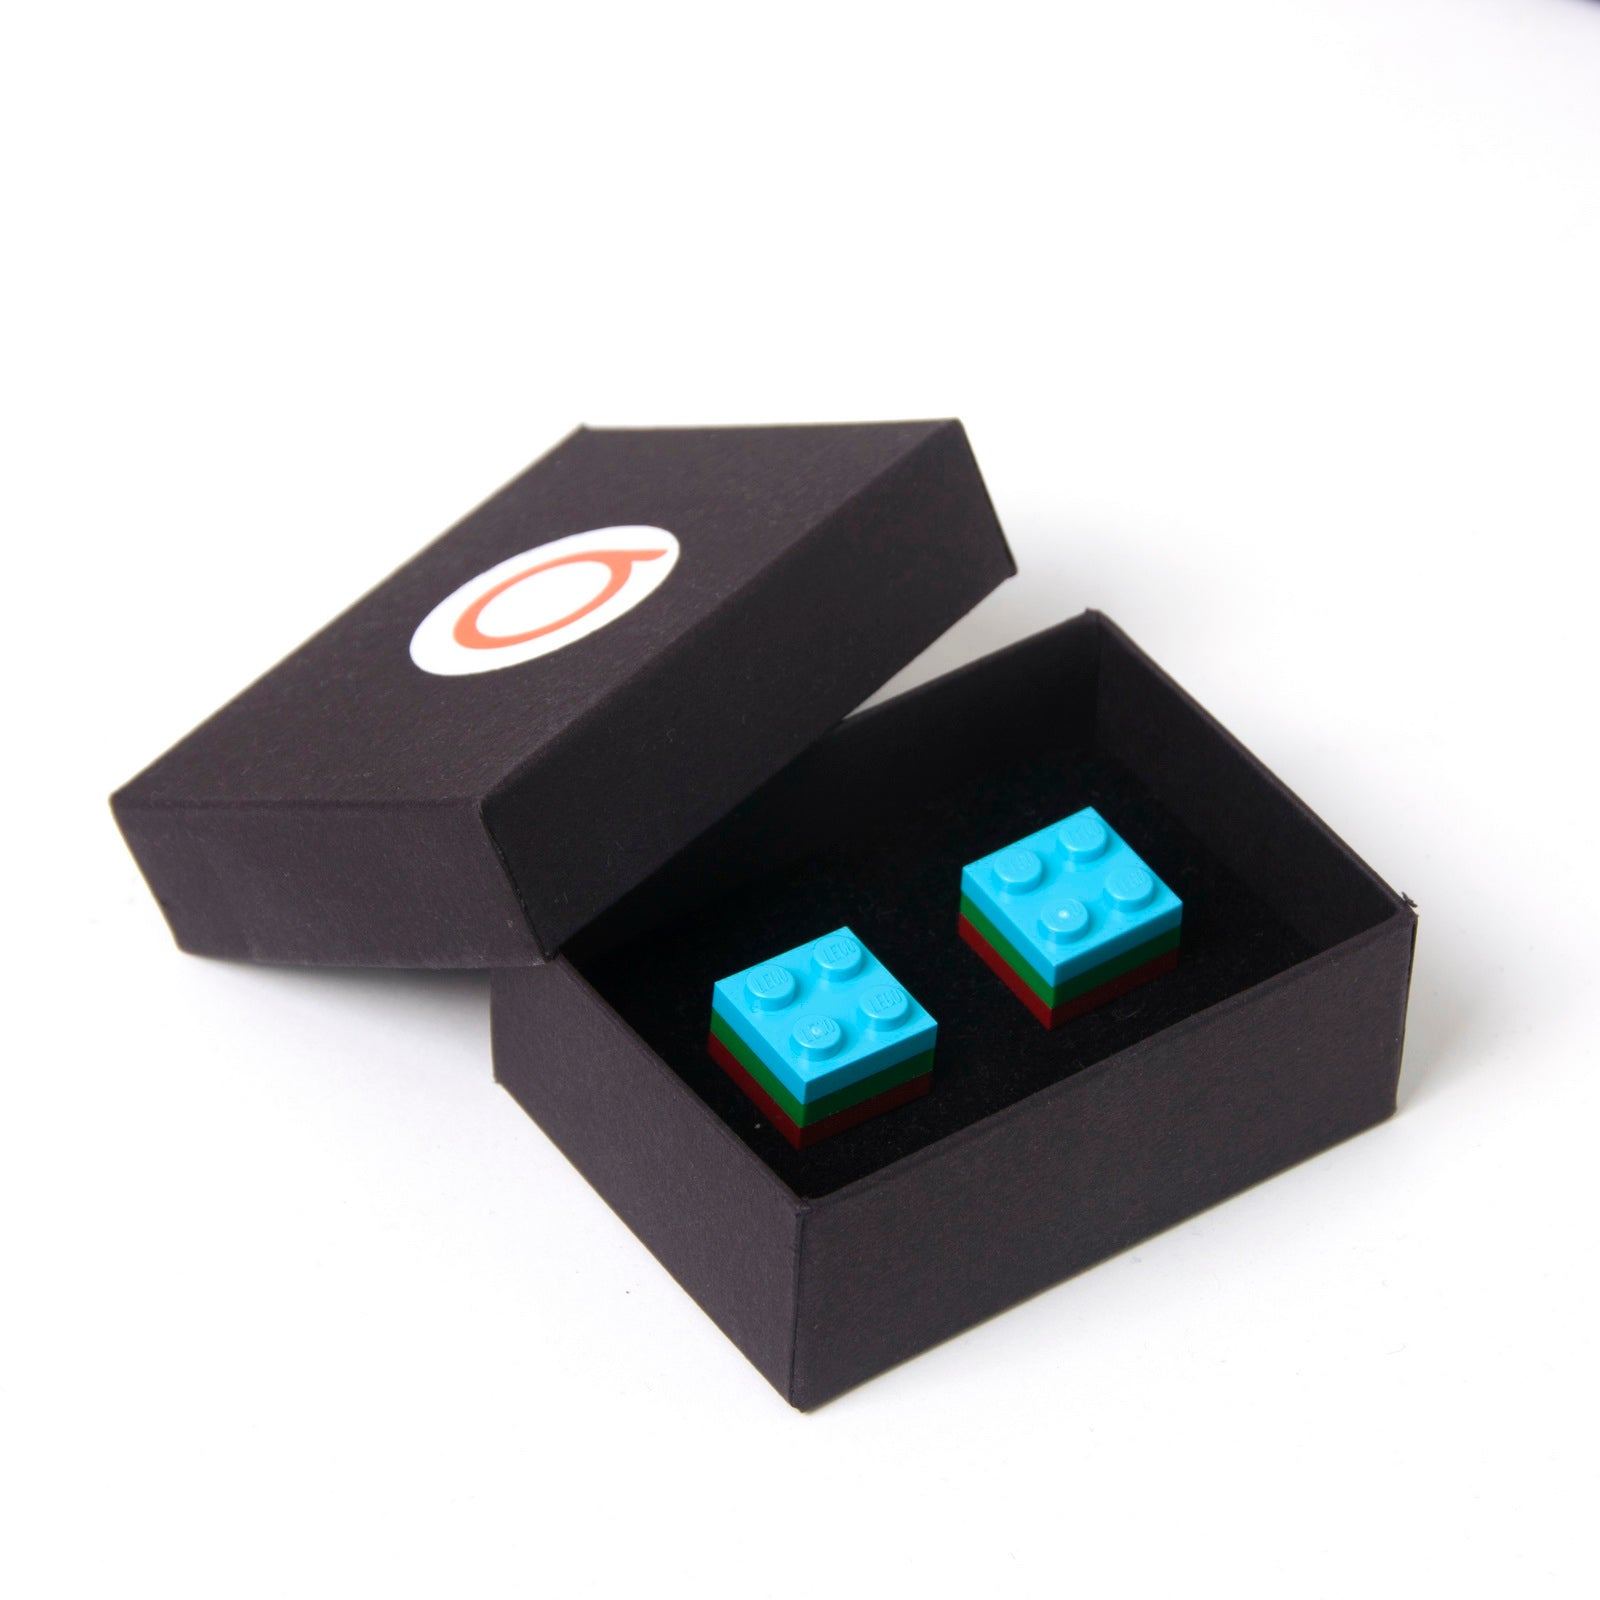 ADELAIDE tricolor cufflinks